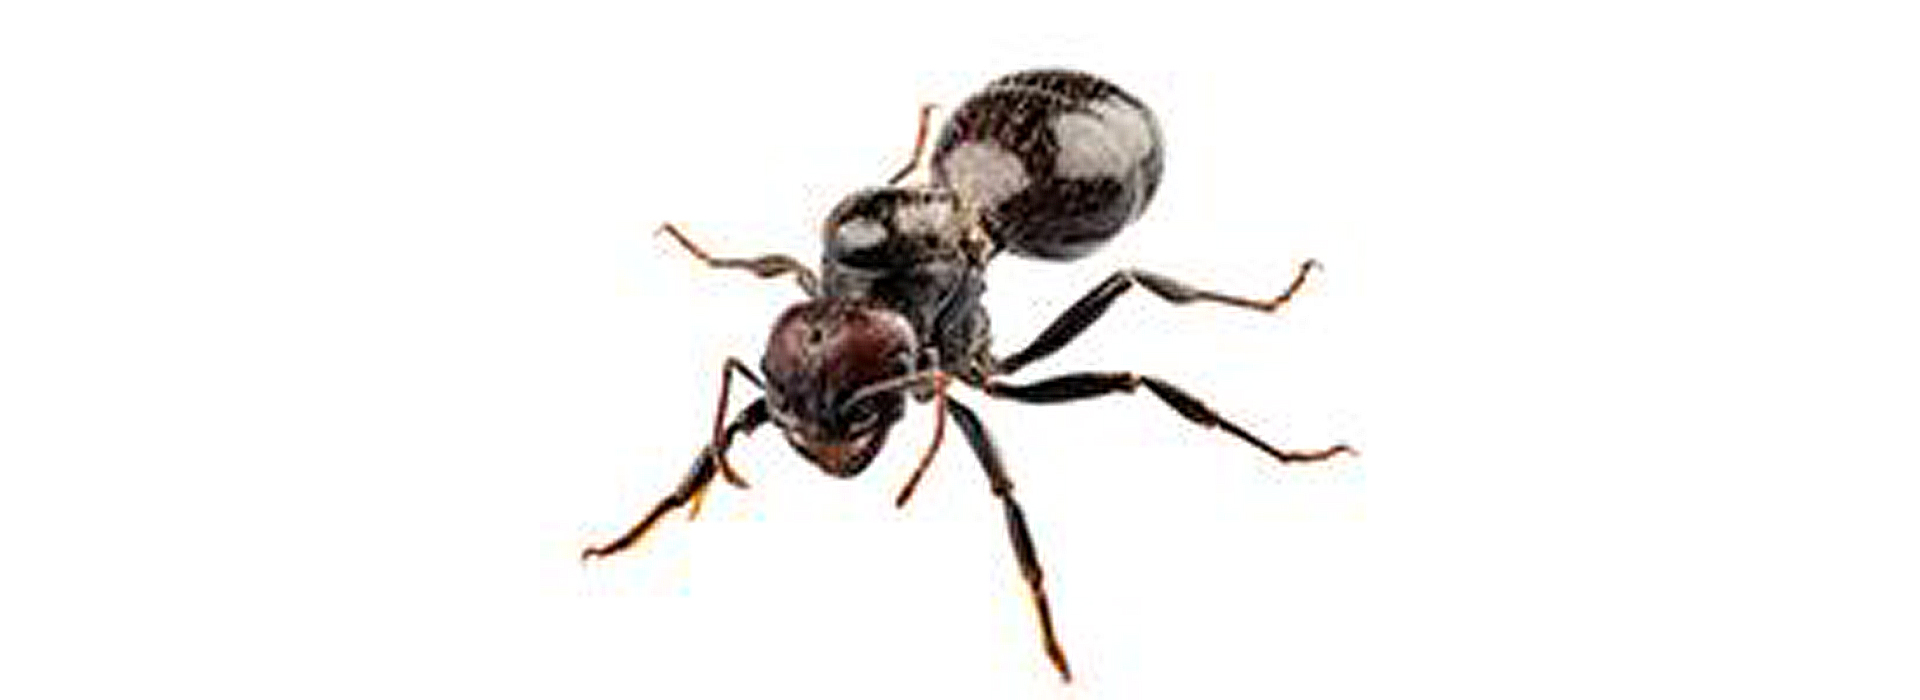 Photograph depicting a common black ant